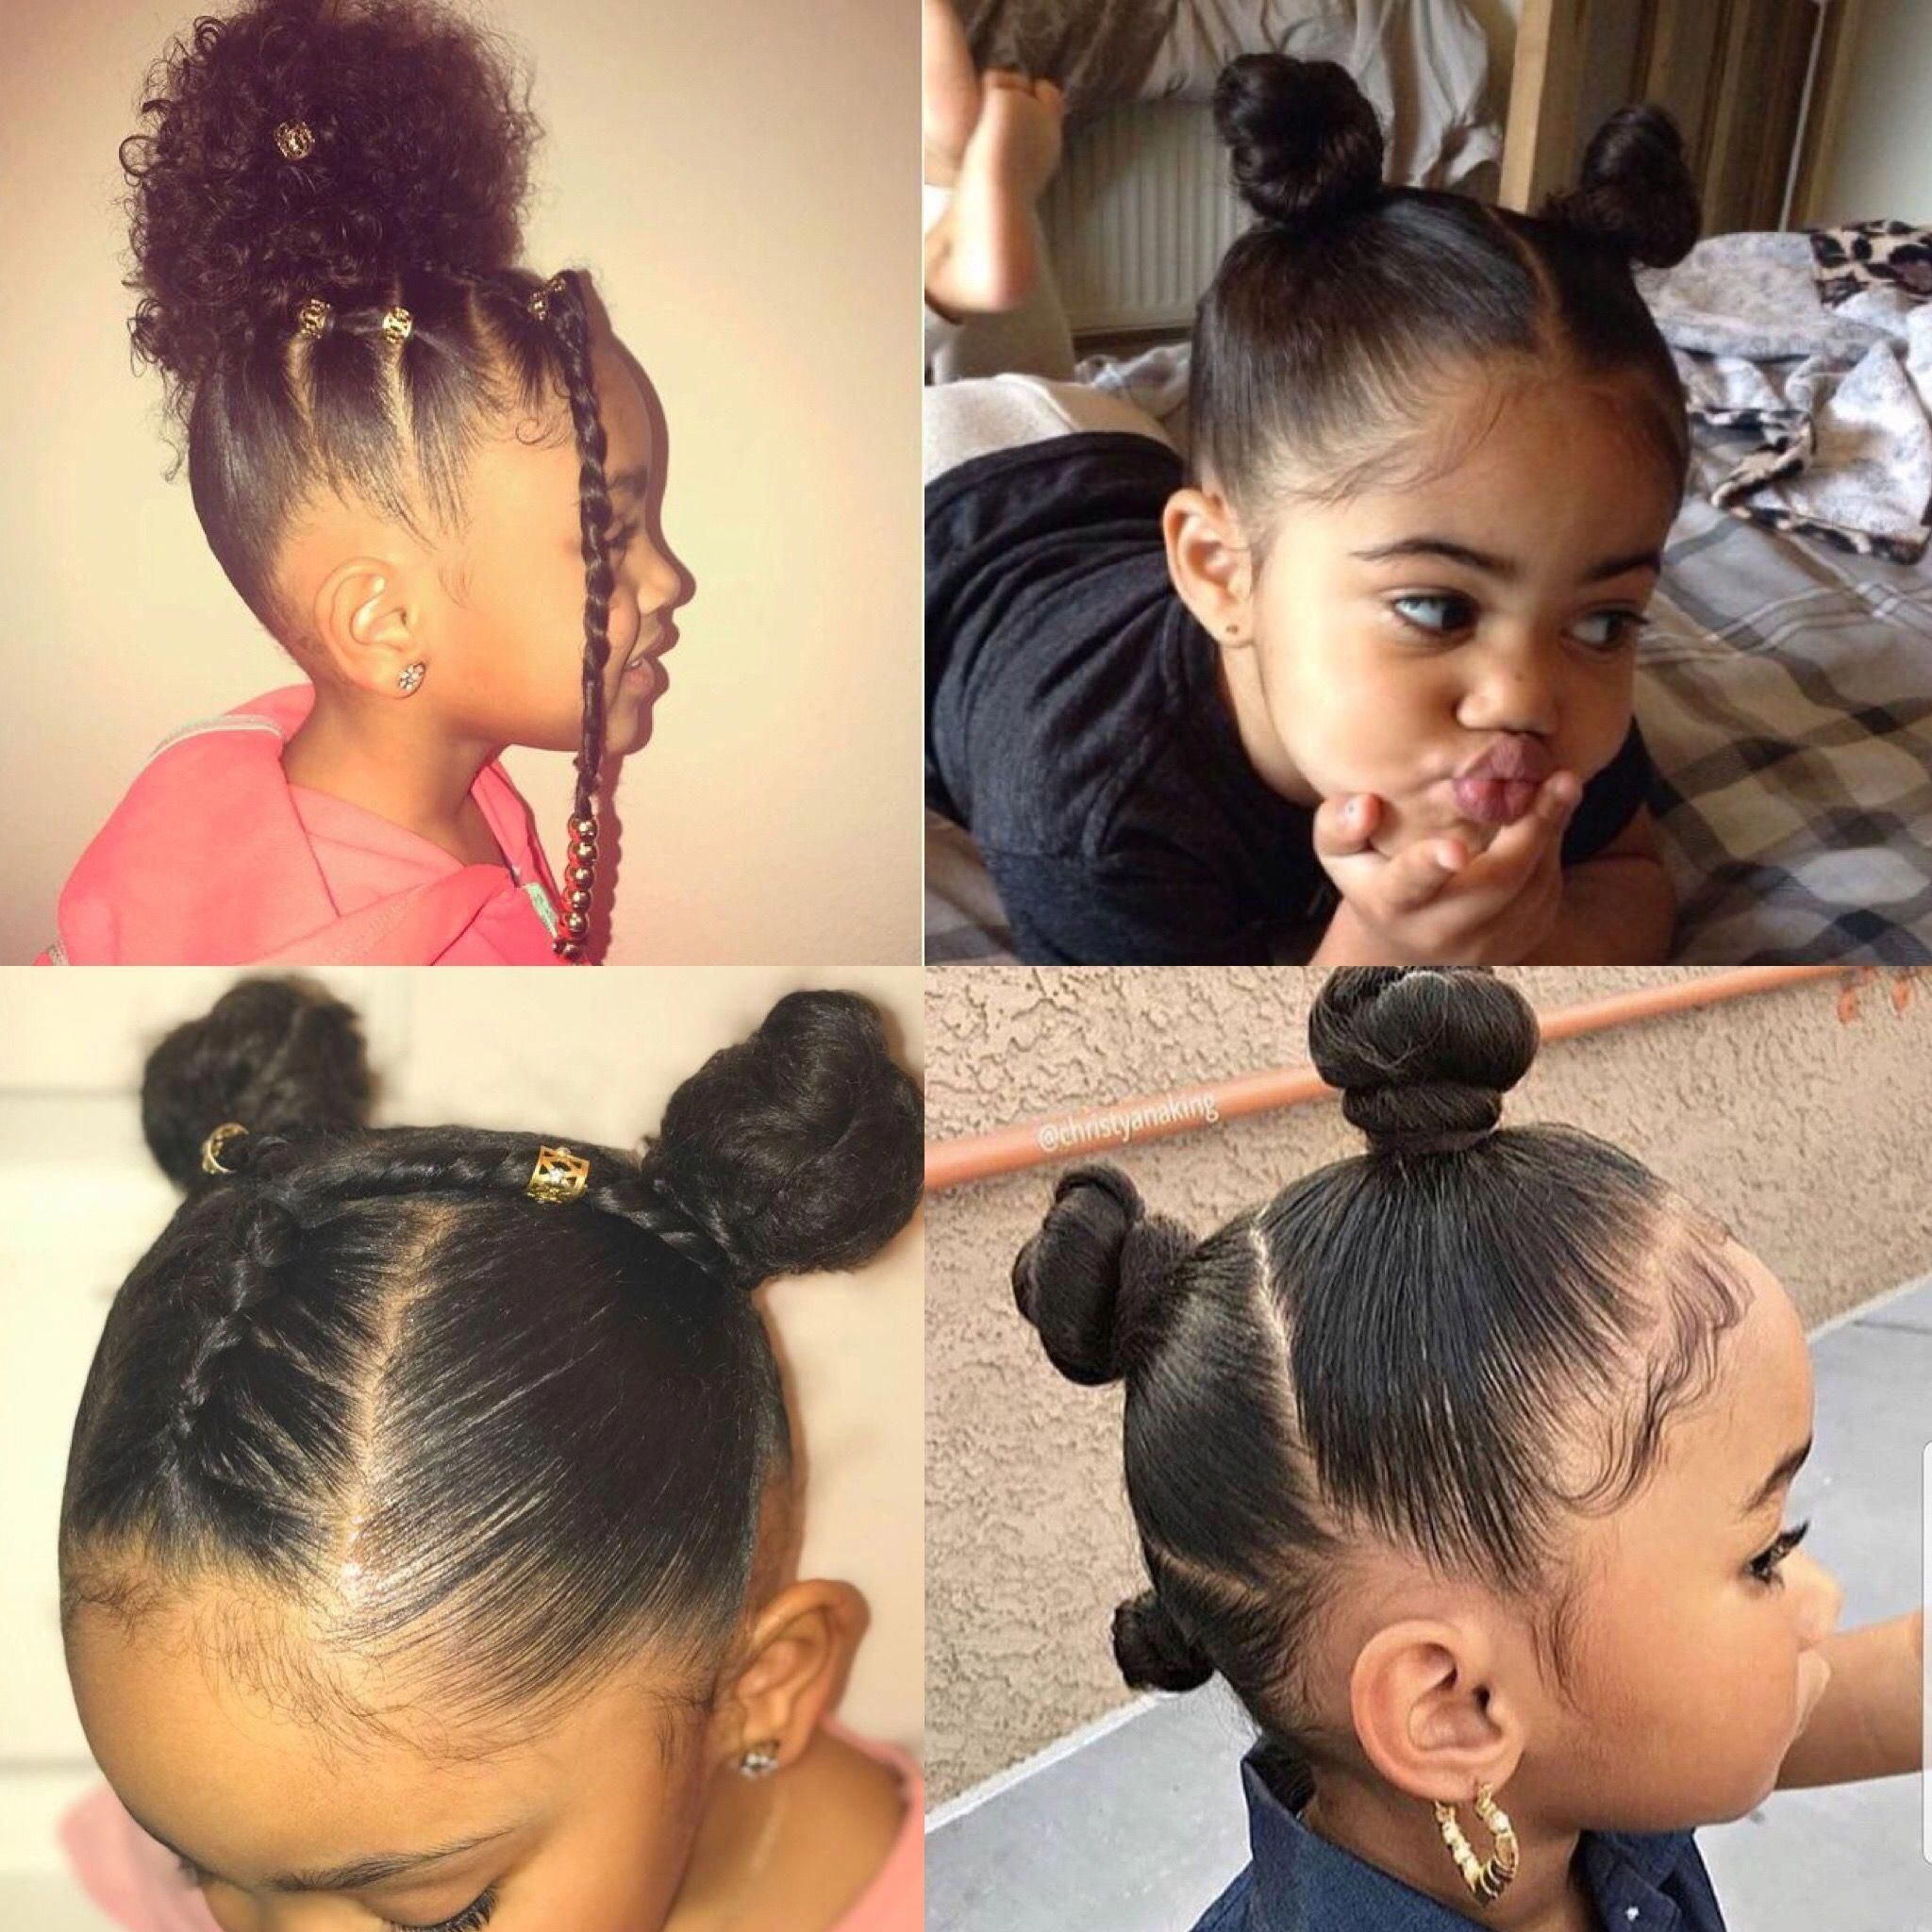 13+ Cute hairstyles for black kids with short hair ideas